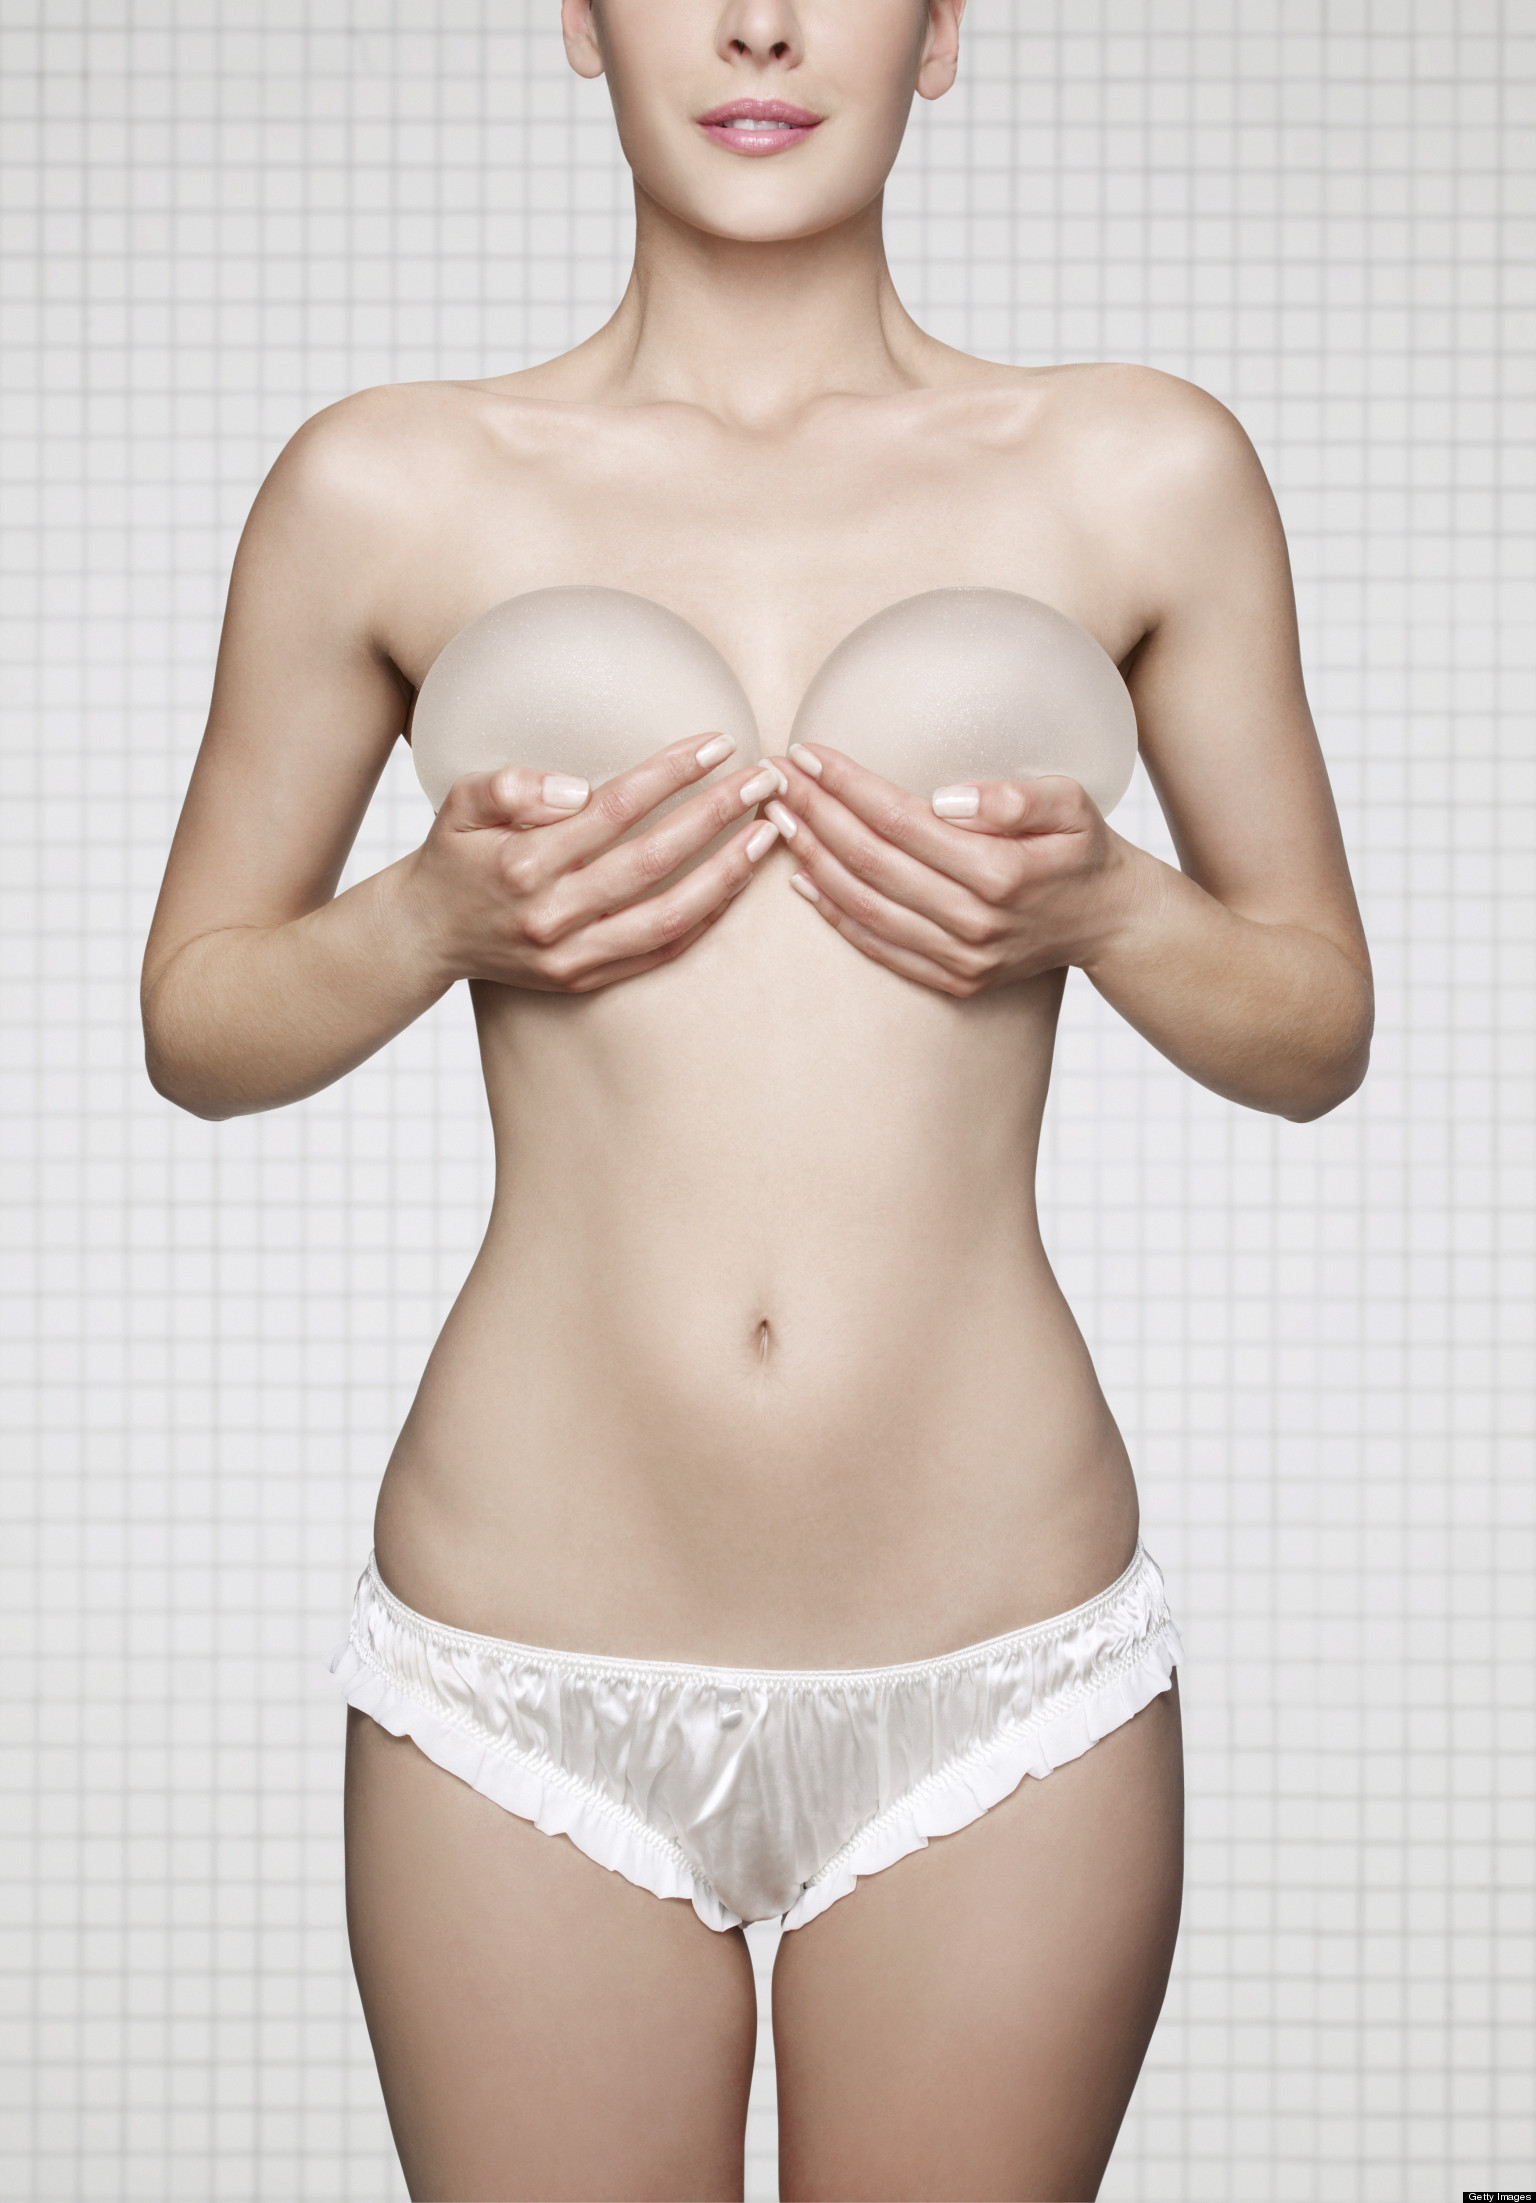 How bad does breast augmentation hurt